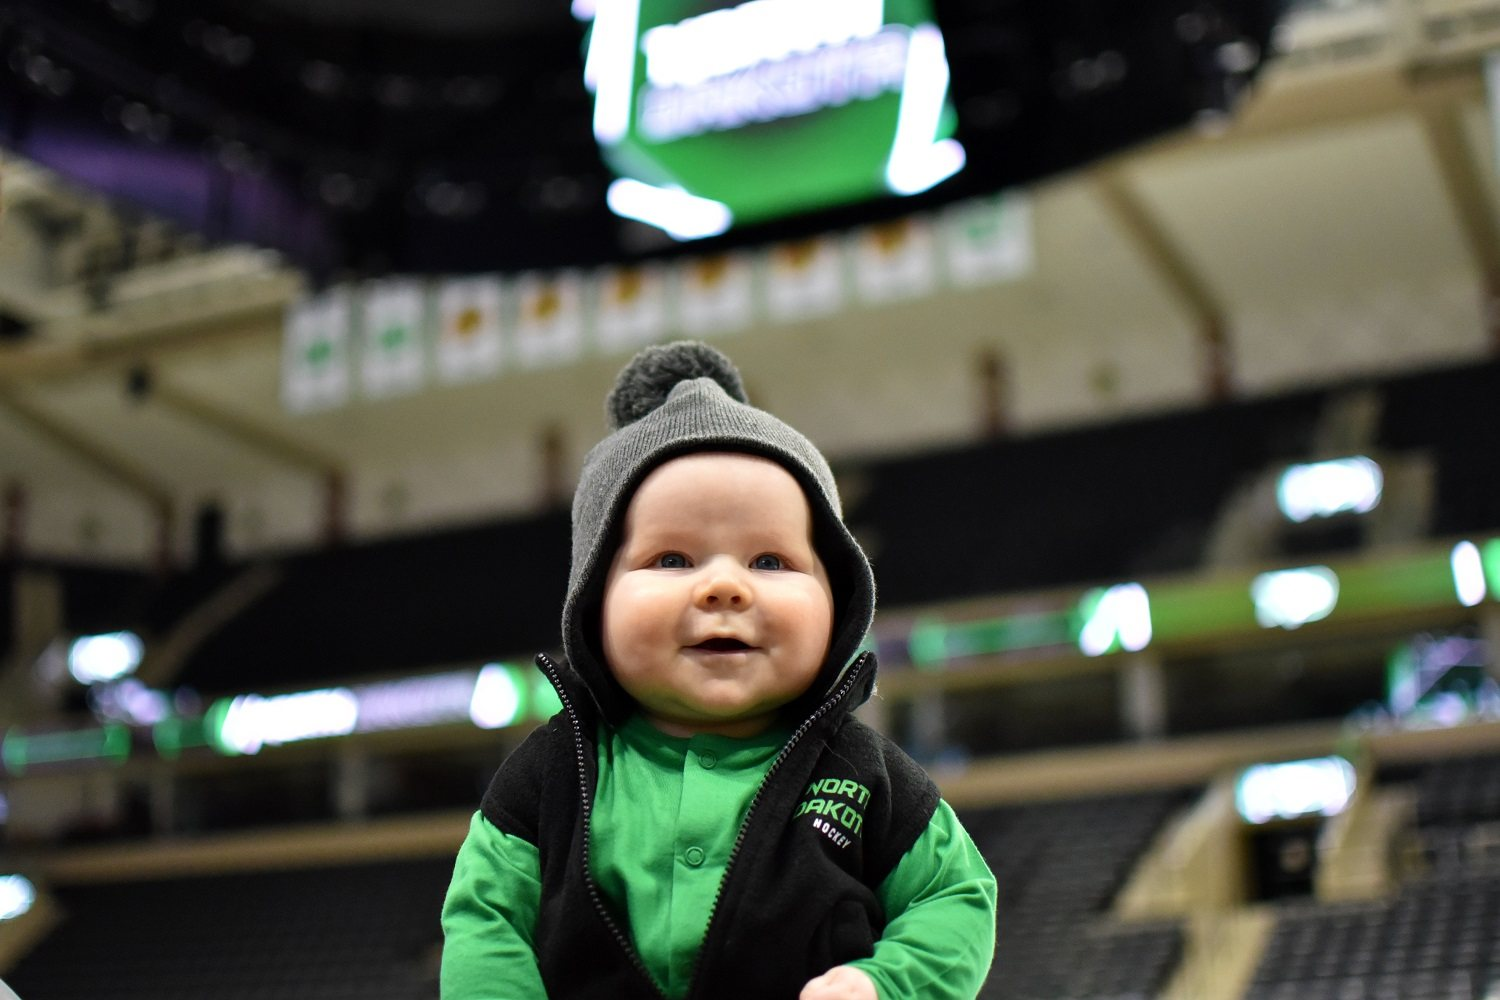 Sioux Shop has great kids gear too!